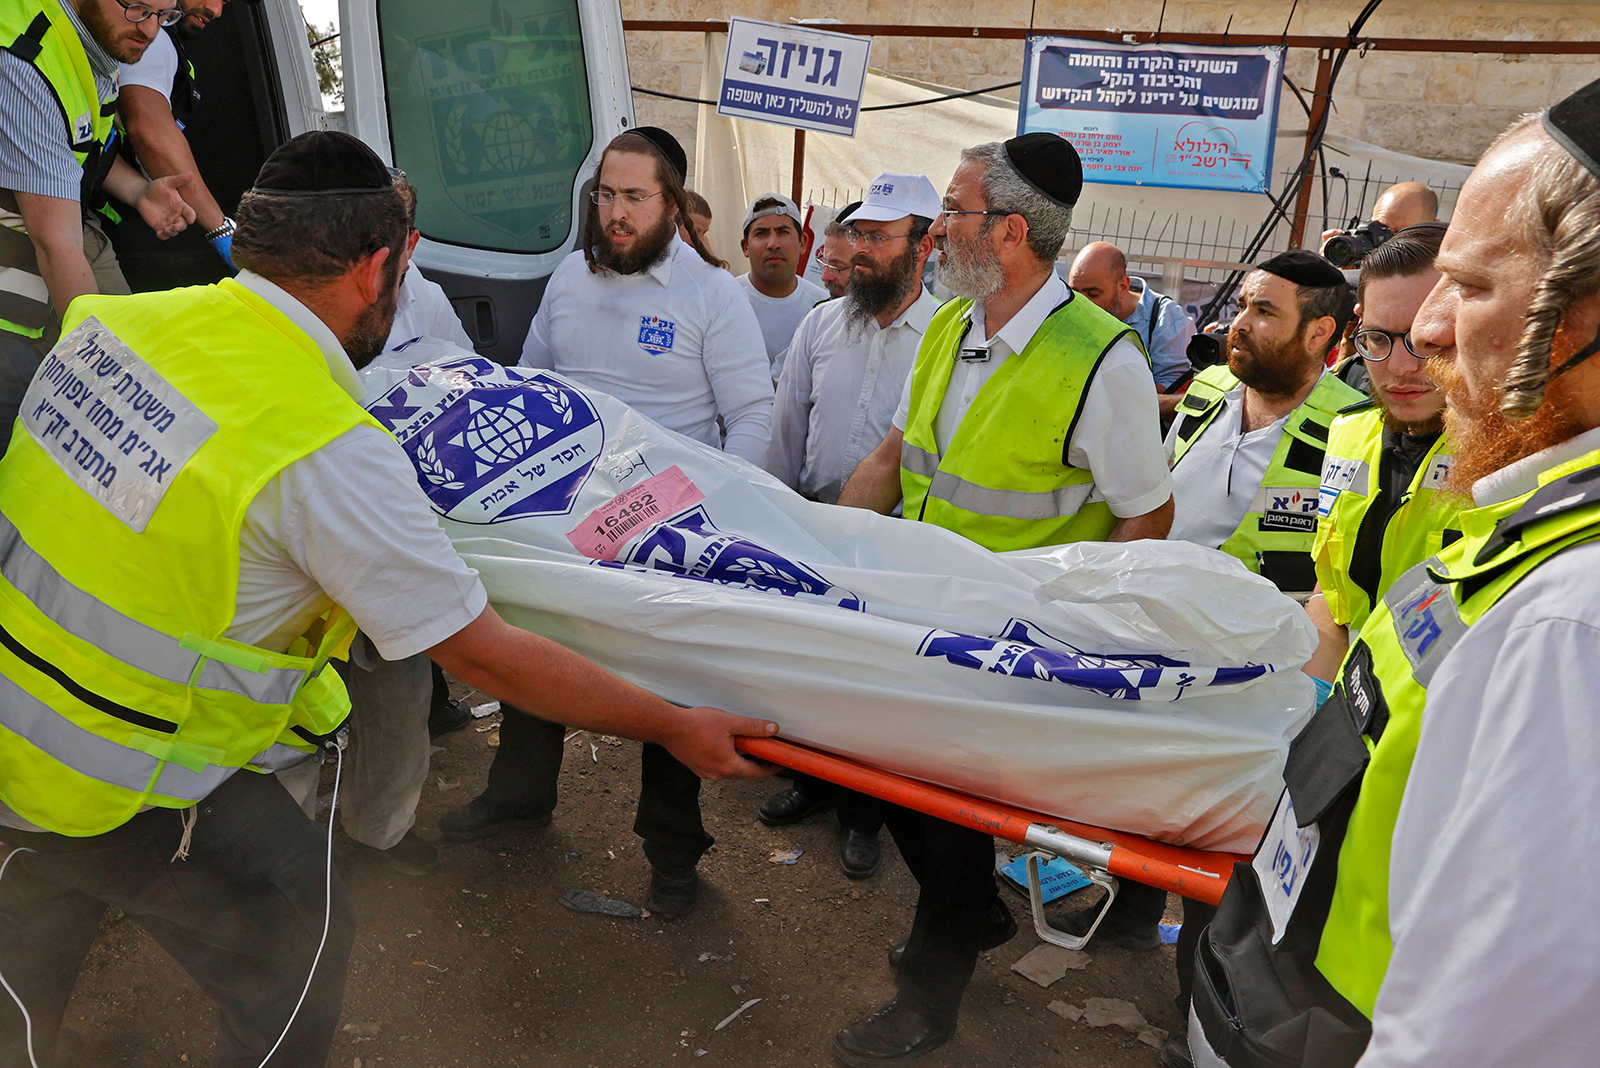 Israeli rescue teams carry a body bag into an ambulance in Meron, Israel, on April 30.